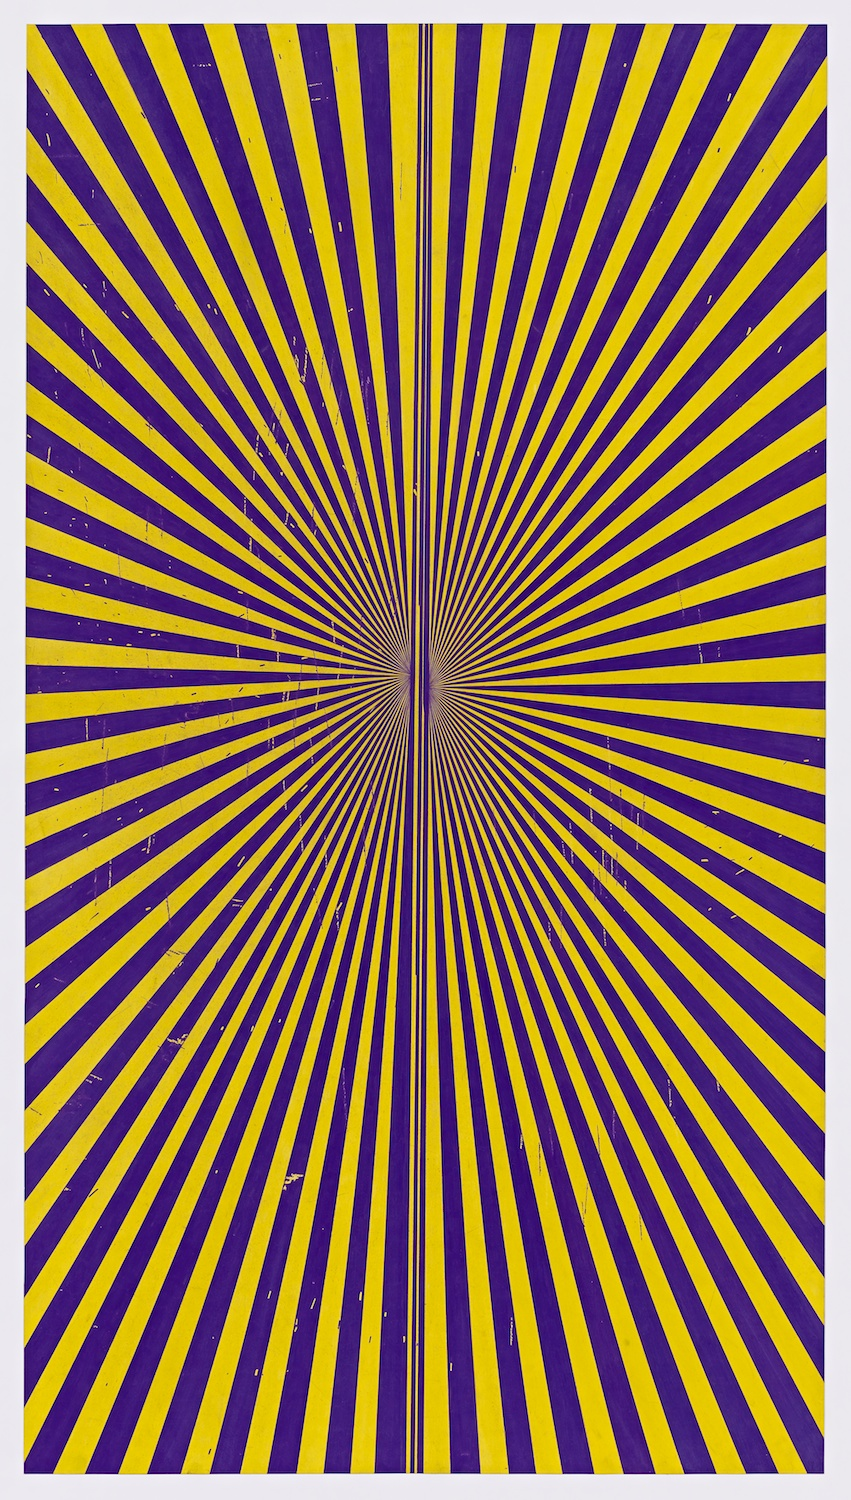 "Mark Grotjahn Untitled (Violet and Canary Yellow Butterfly 45.05) 2013 Color pencil on paper 76"" x 42"" MG45.05"